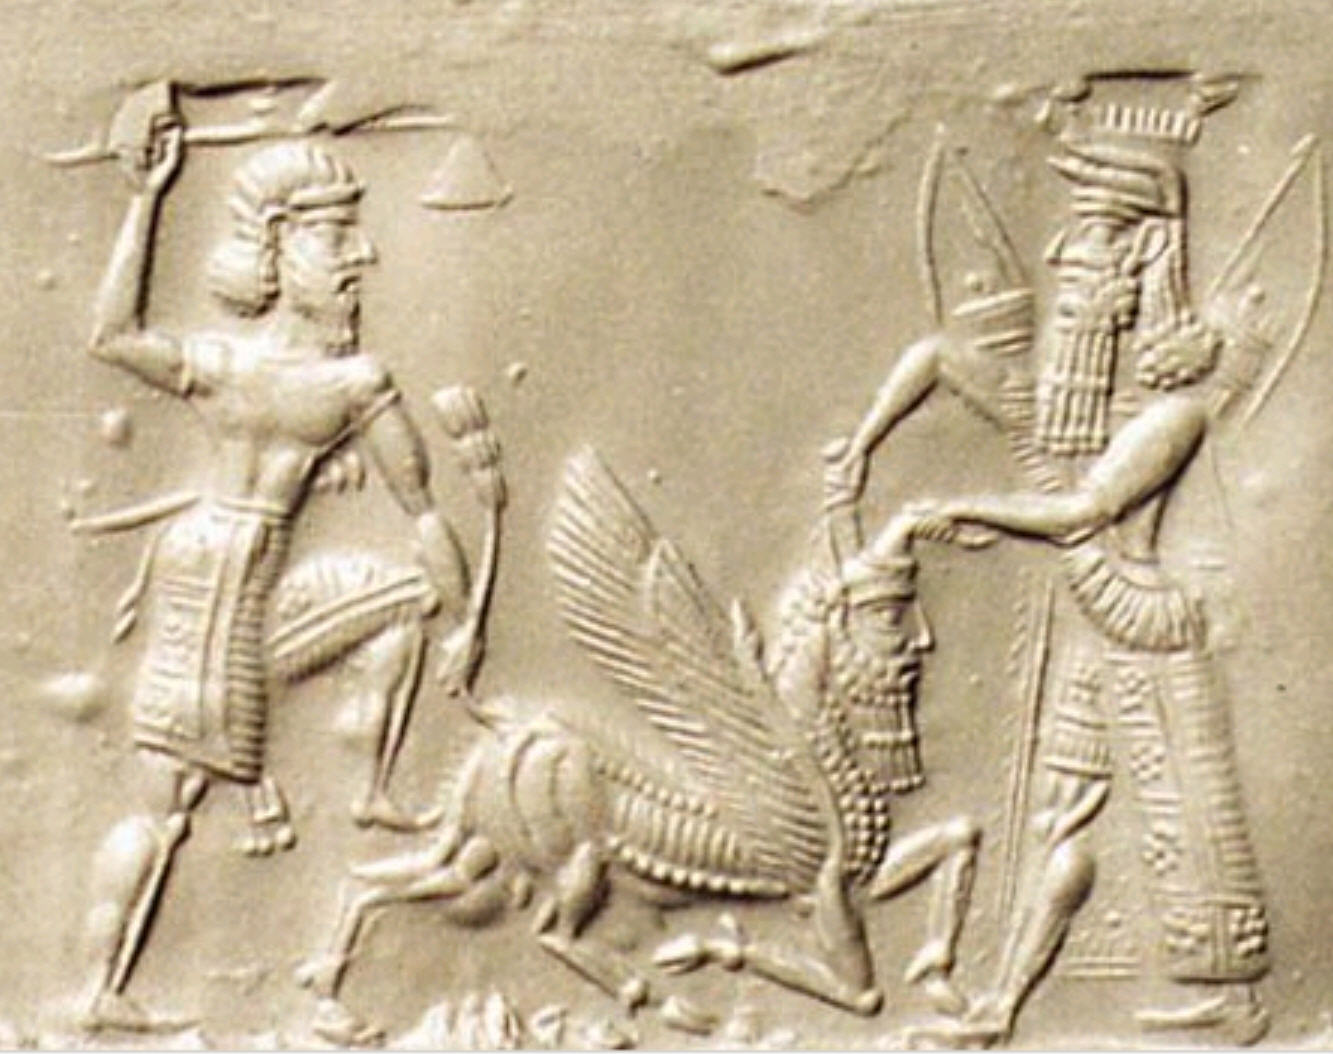 Enkidu and Gilgamesh Slaying the Bull of Heaven